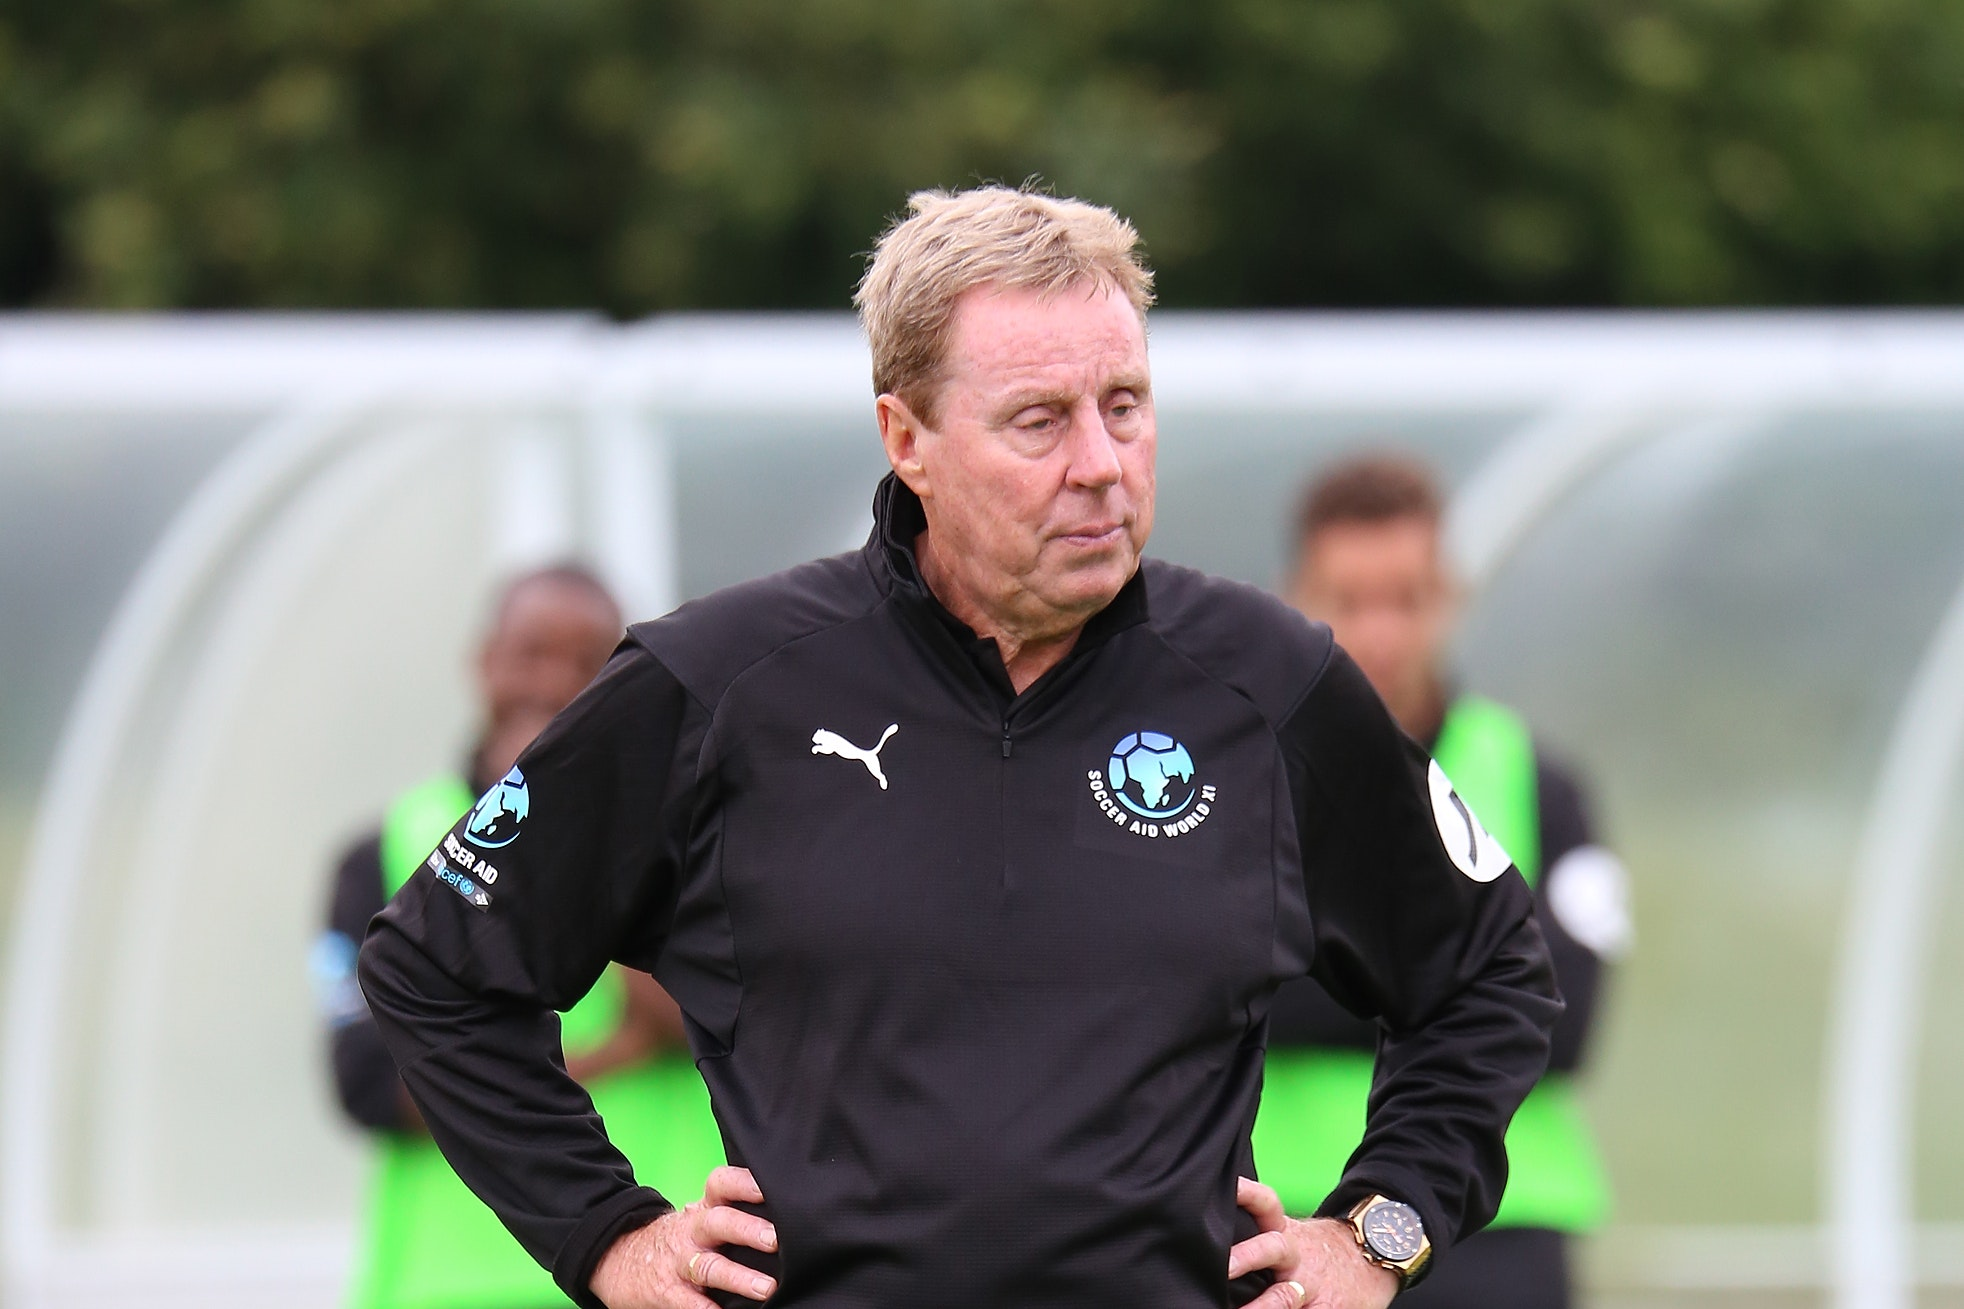 When I'm a Celebrity victor Harry Redknapp played for AP Leamington